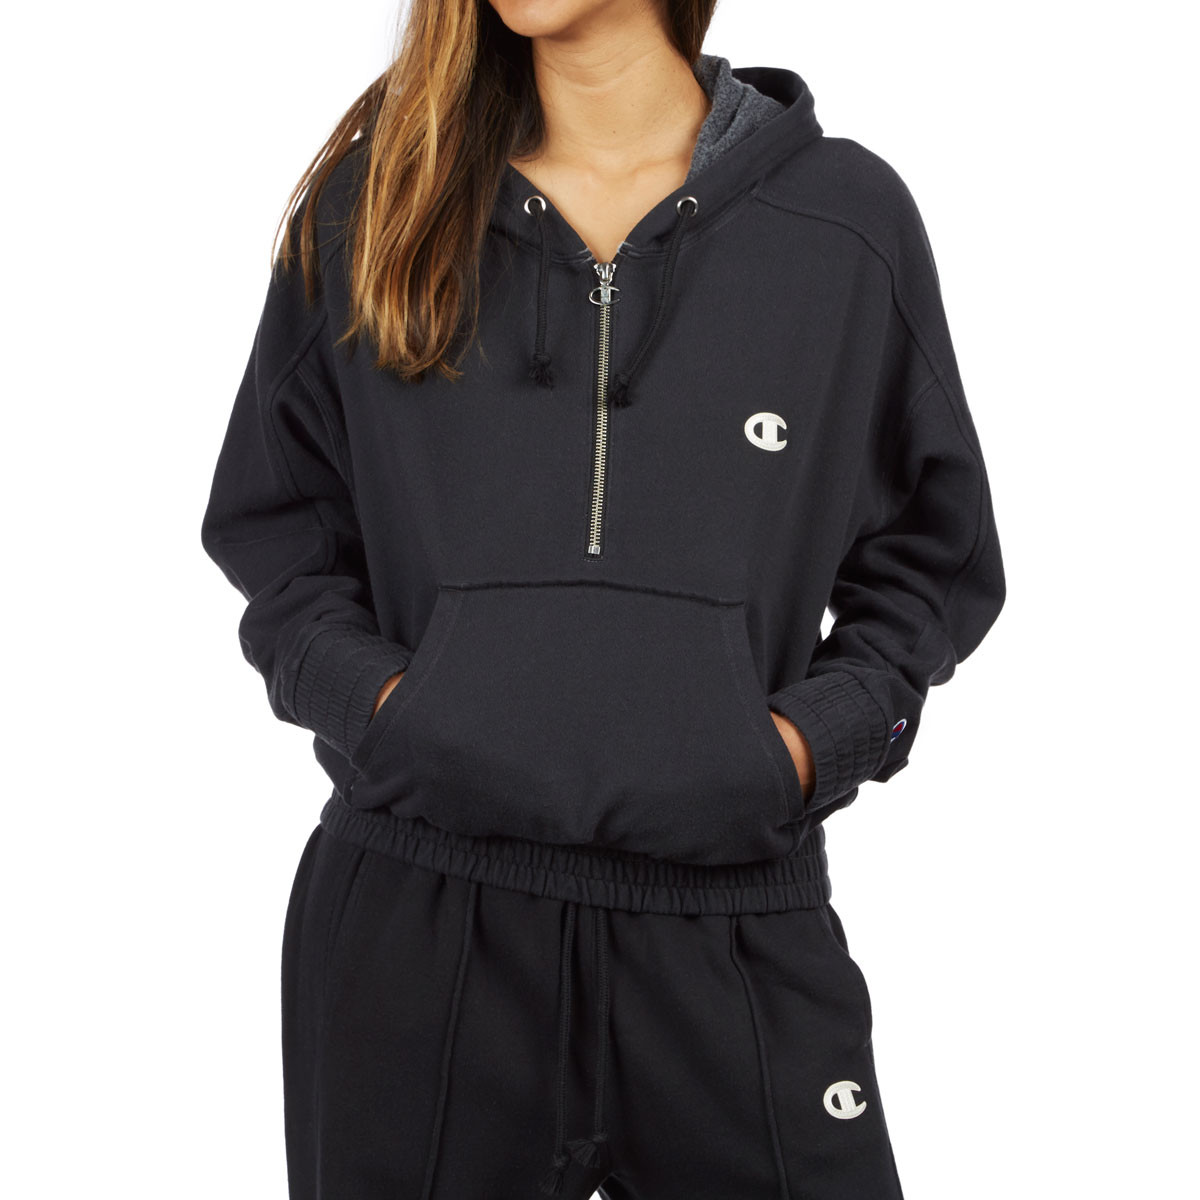 Champion Womens Vintage Dyed Fleece 1 2 Zip Hoodie - Black b553220ee2